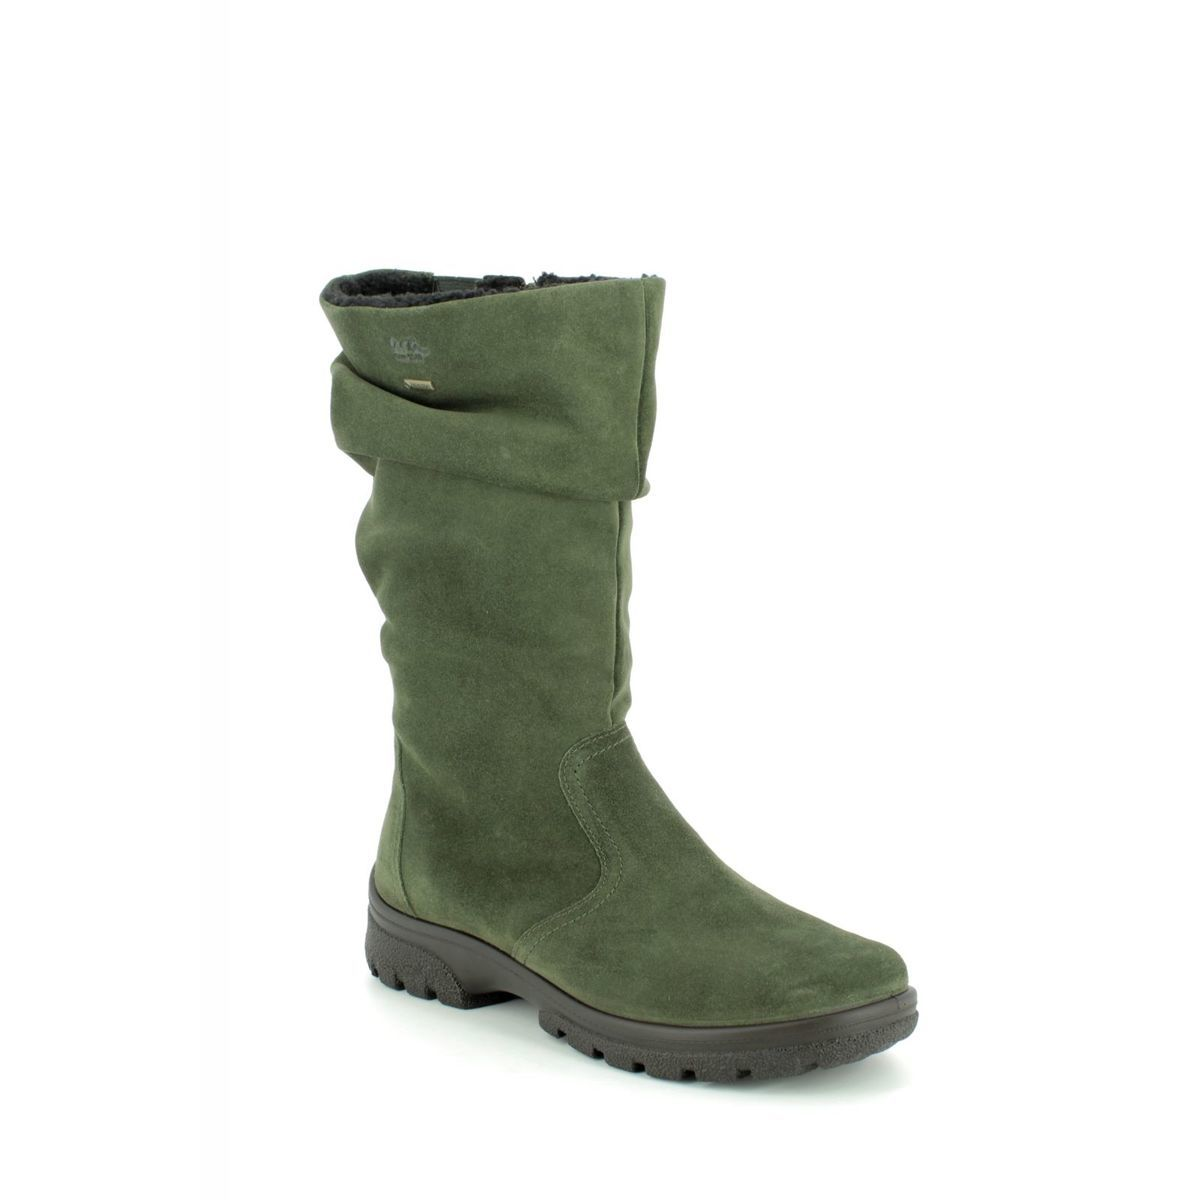 475d3c05 Ara Knee-high Boots - Green Suede - 49336/60 SAAS FEE BOOT GORE